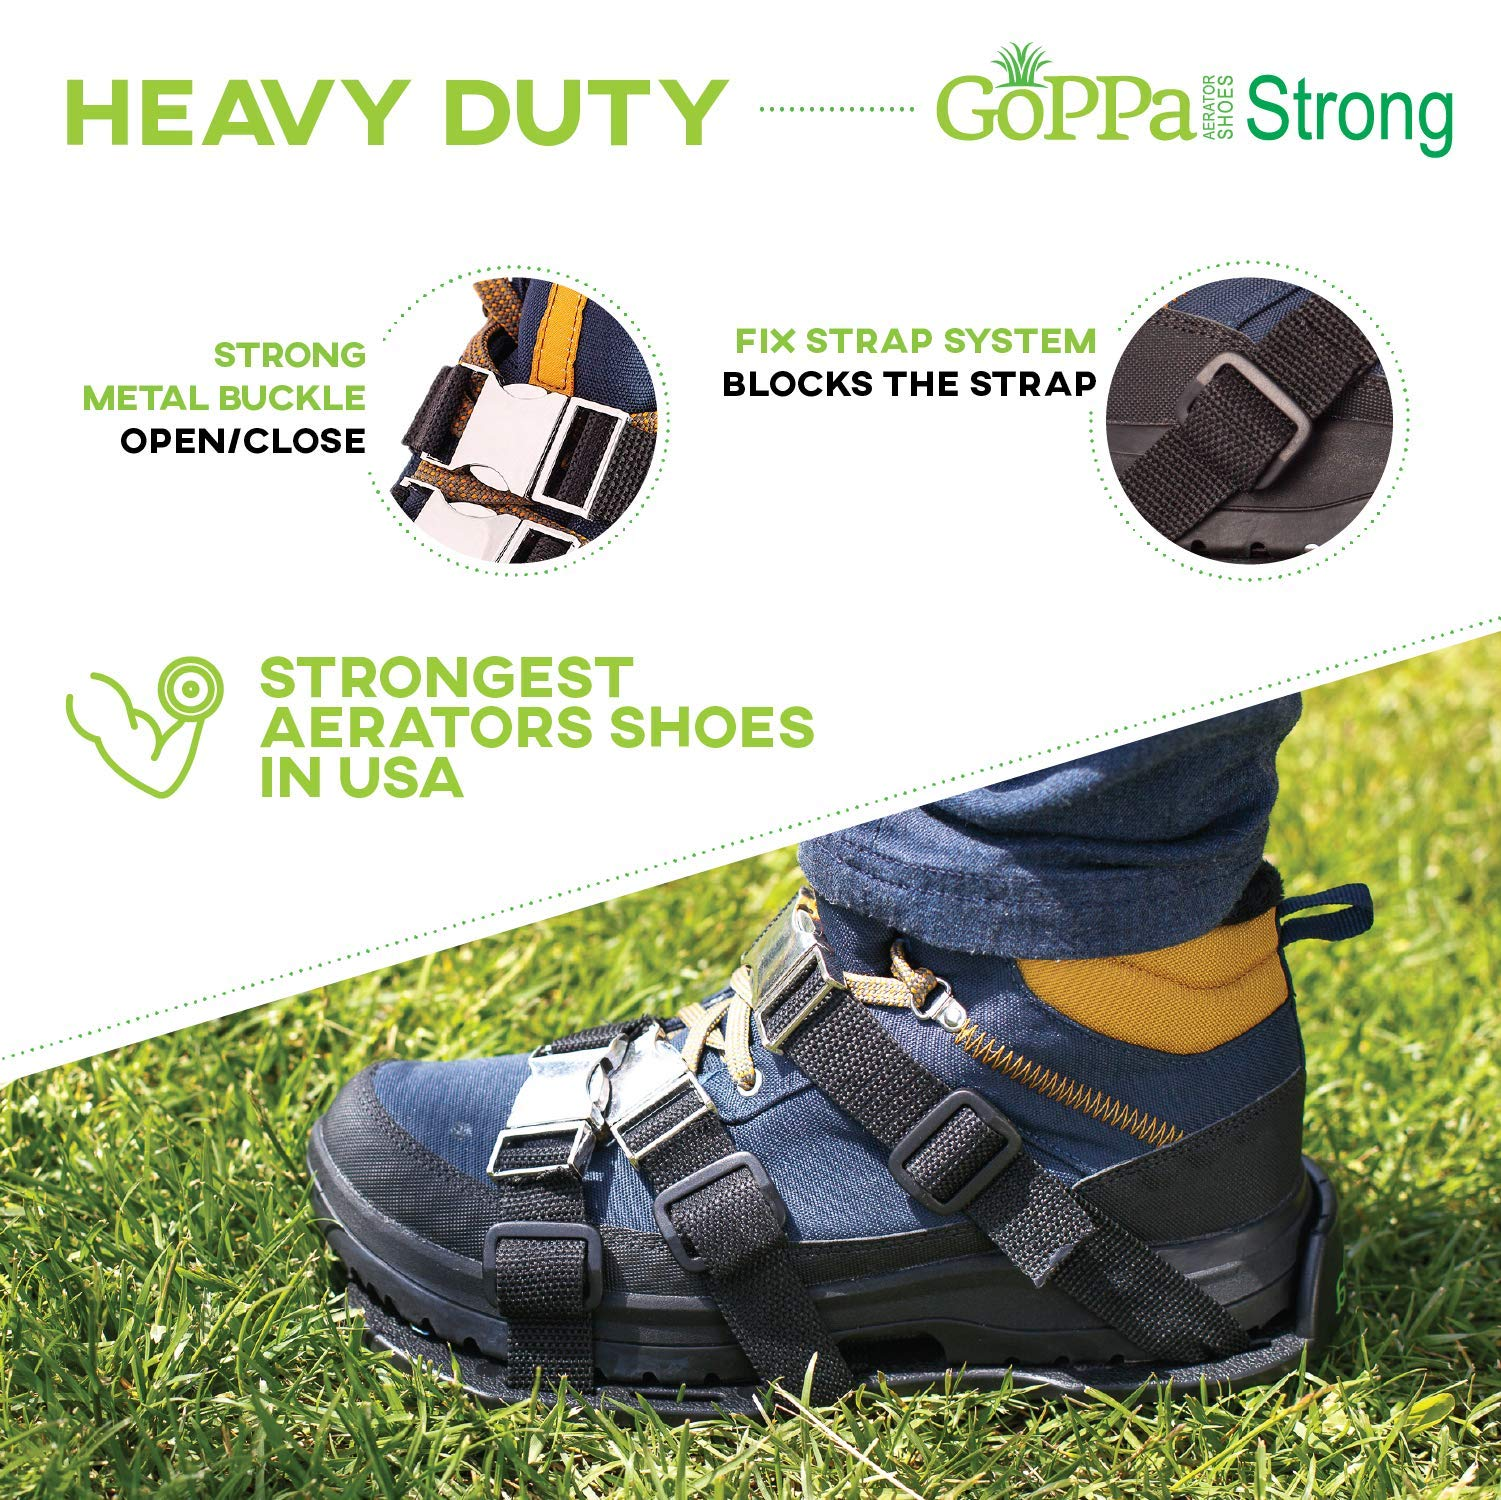 GoPPa Lawn Aerator Shoes – Heavy Duty Lawn Aerator Sandal, You only FIT Once. Ready for aerating Your Yard, Lawn, Roots & Grass – Strong Design by GoPPa (Image #2)